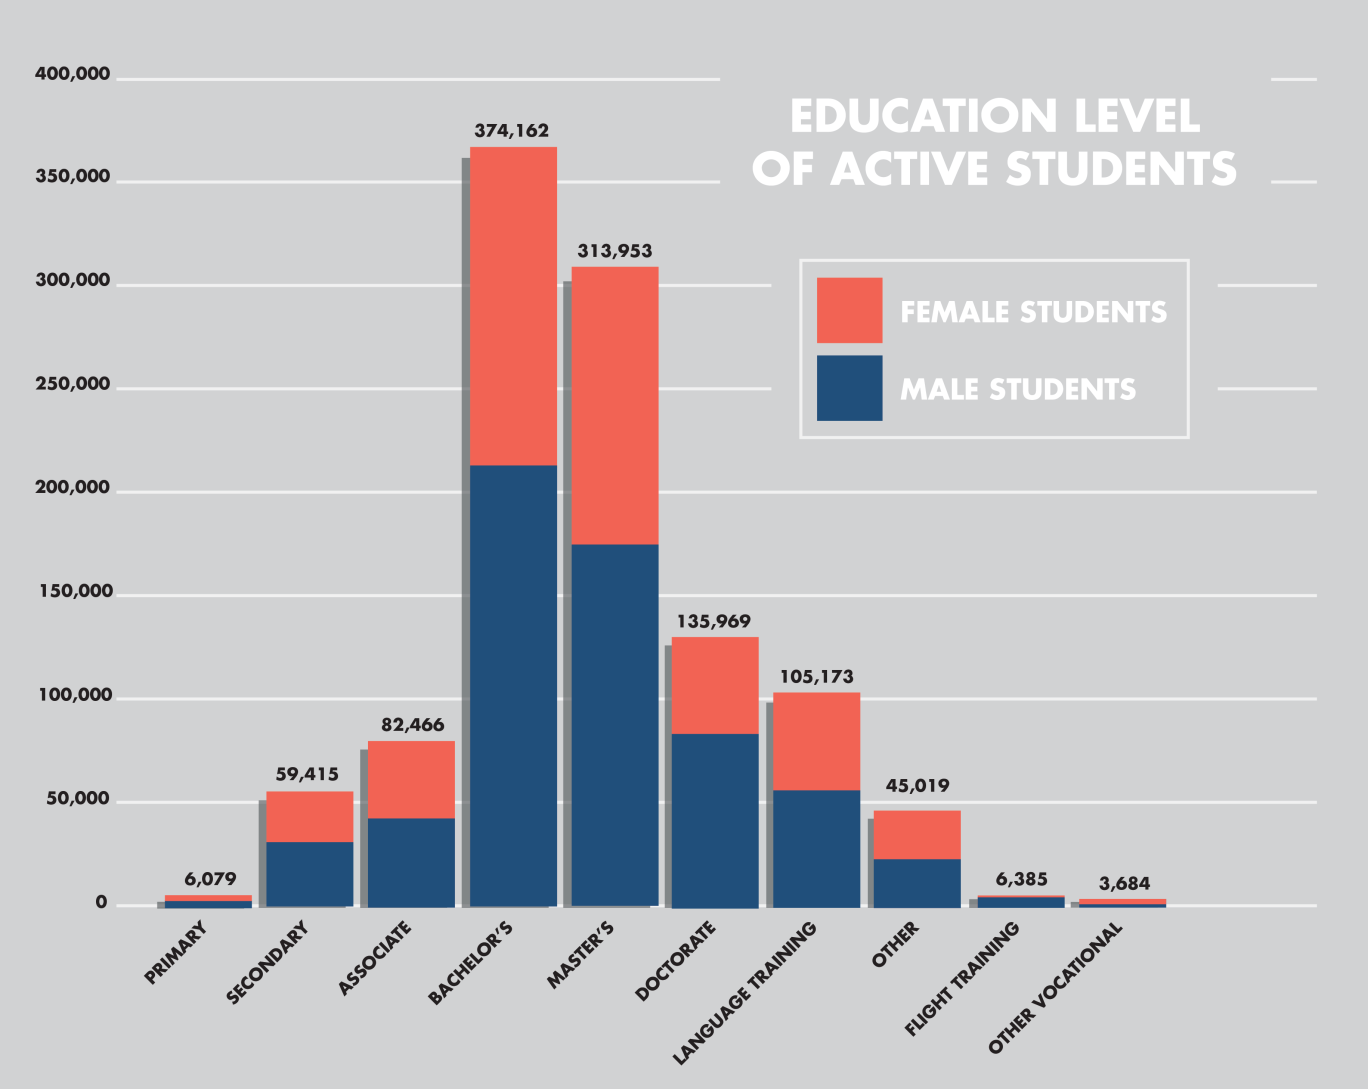 LEVEL OF EDUCATION How many F & M students study at each level of education?